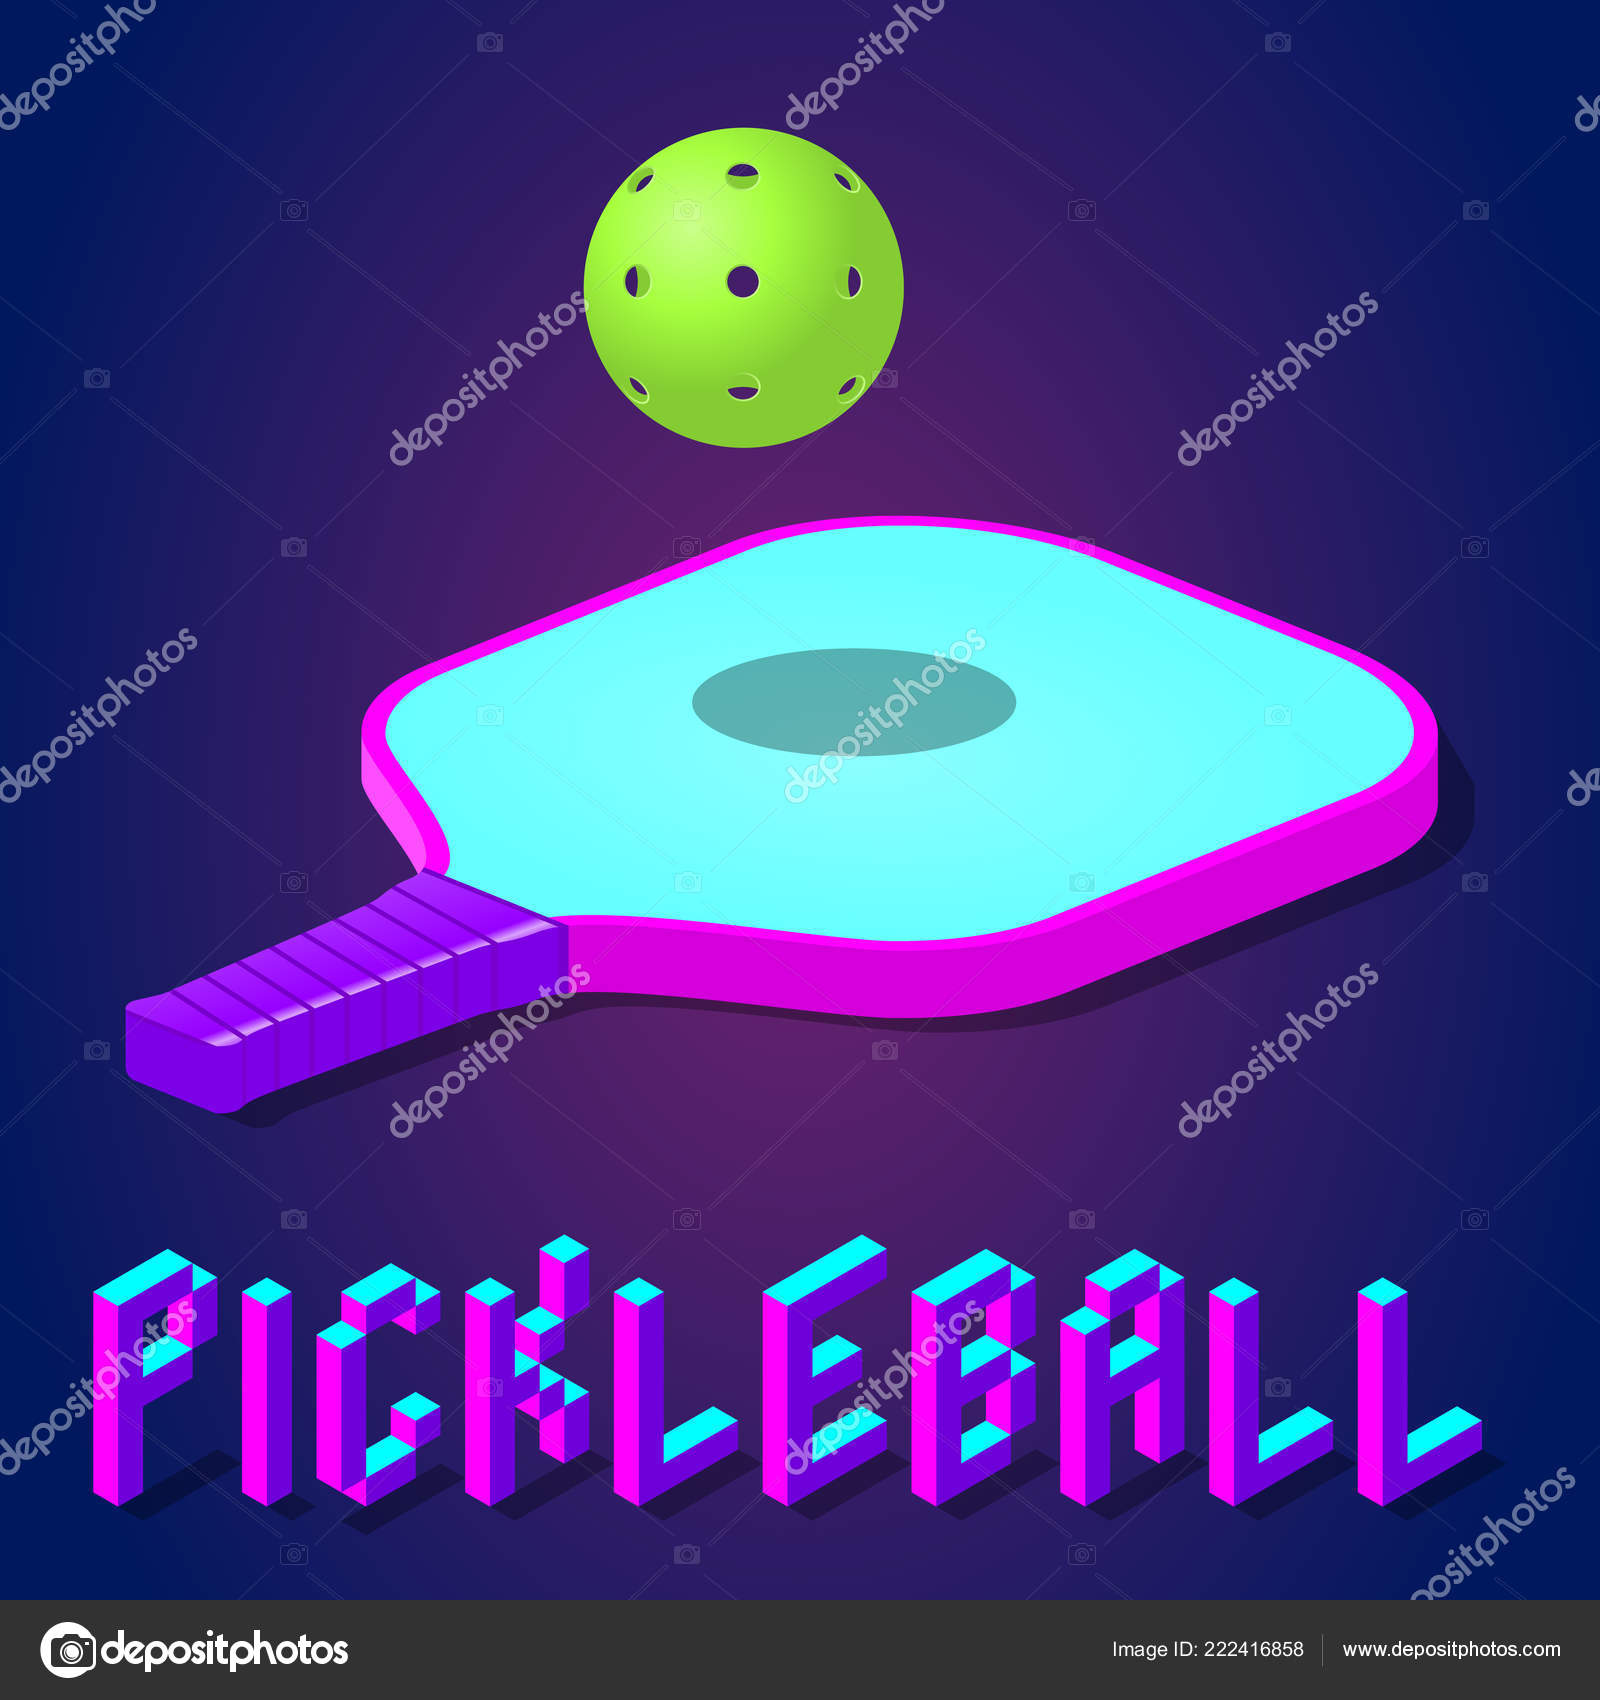 hight resolution of racket or paddle and ball for pickleball game in modern bright color isometric icon logo or label clipart stock vector illustration vector by